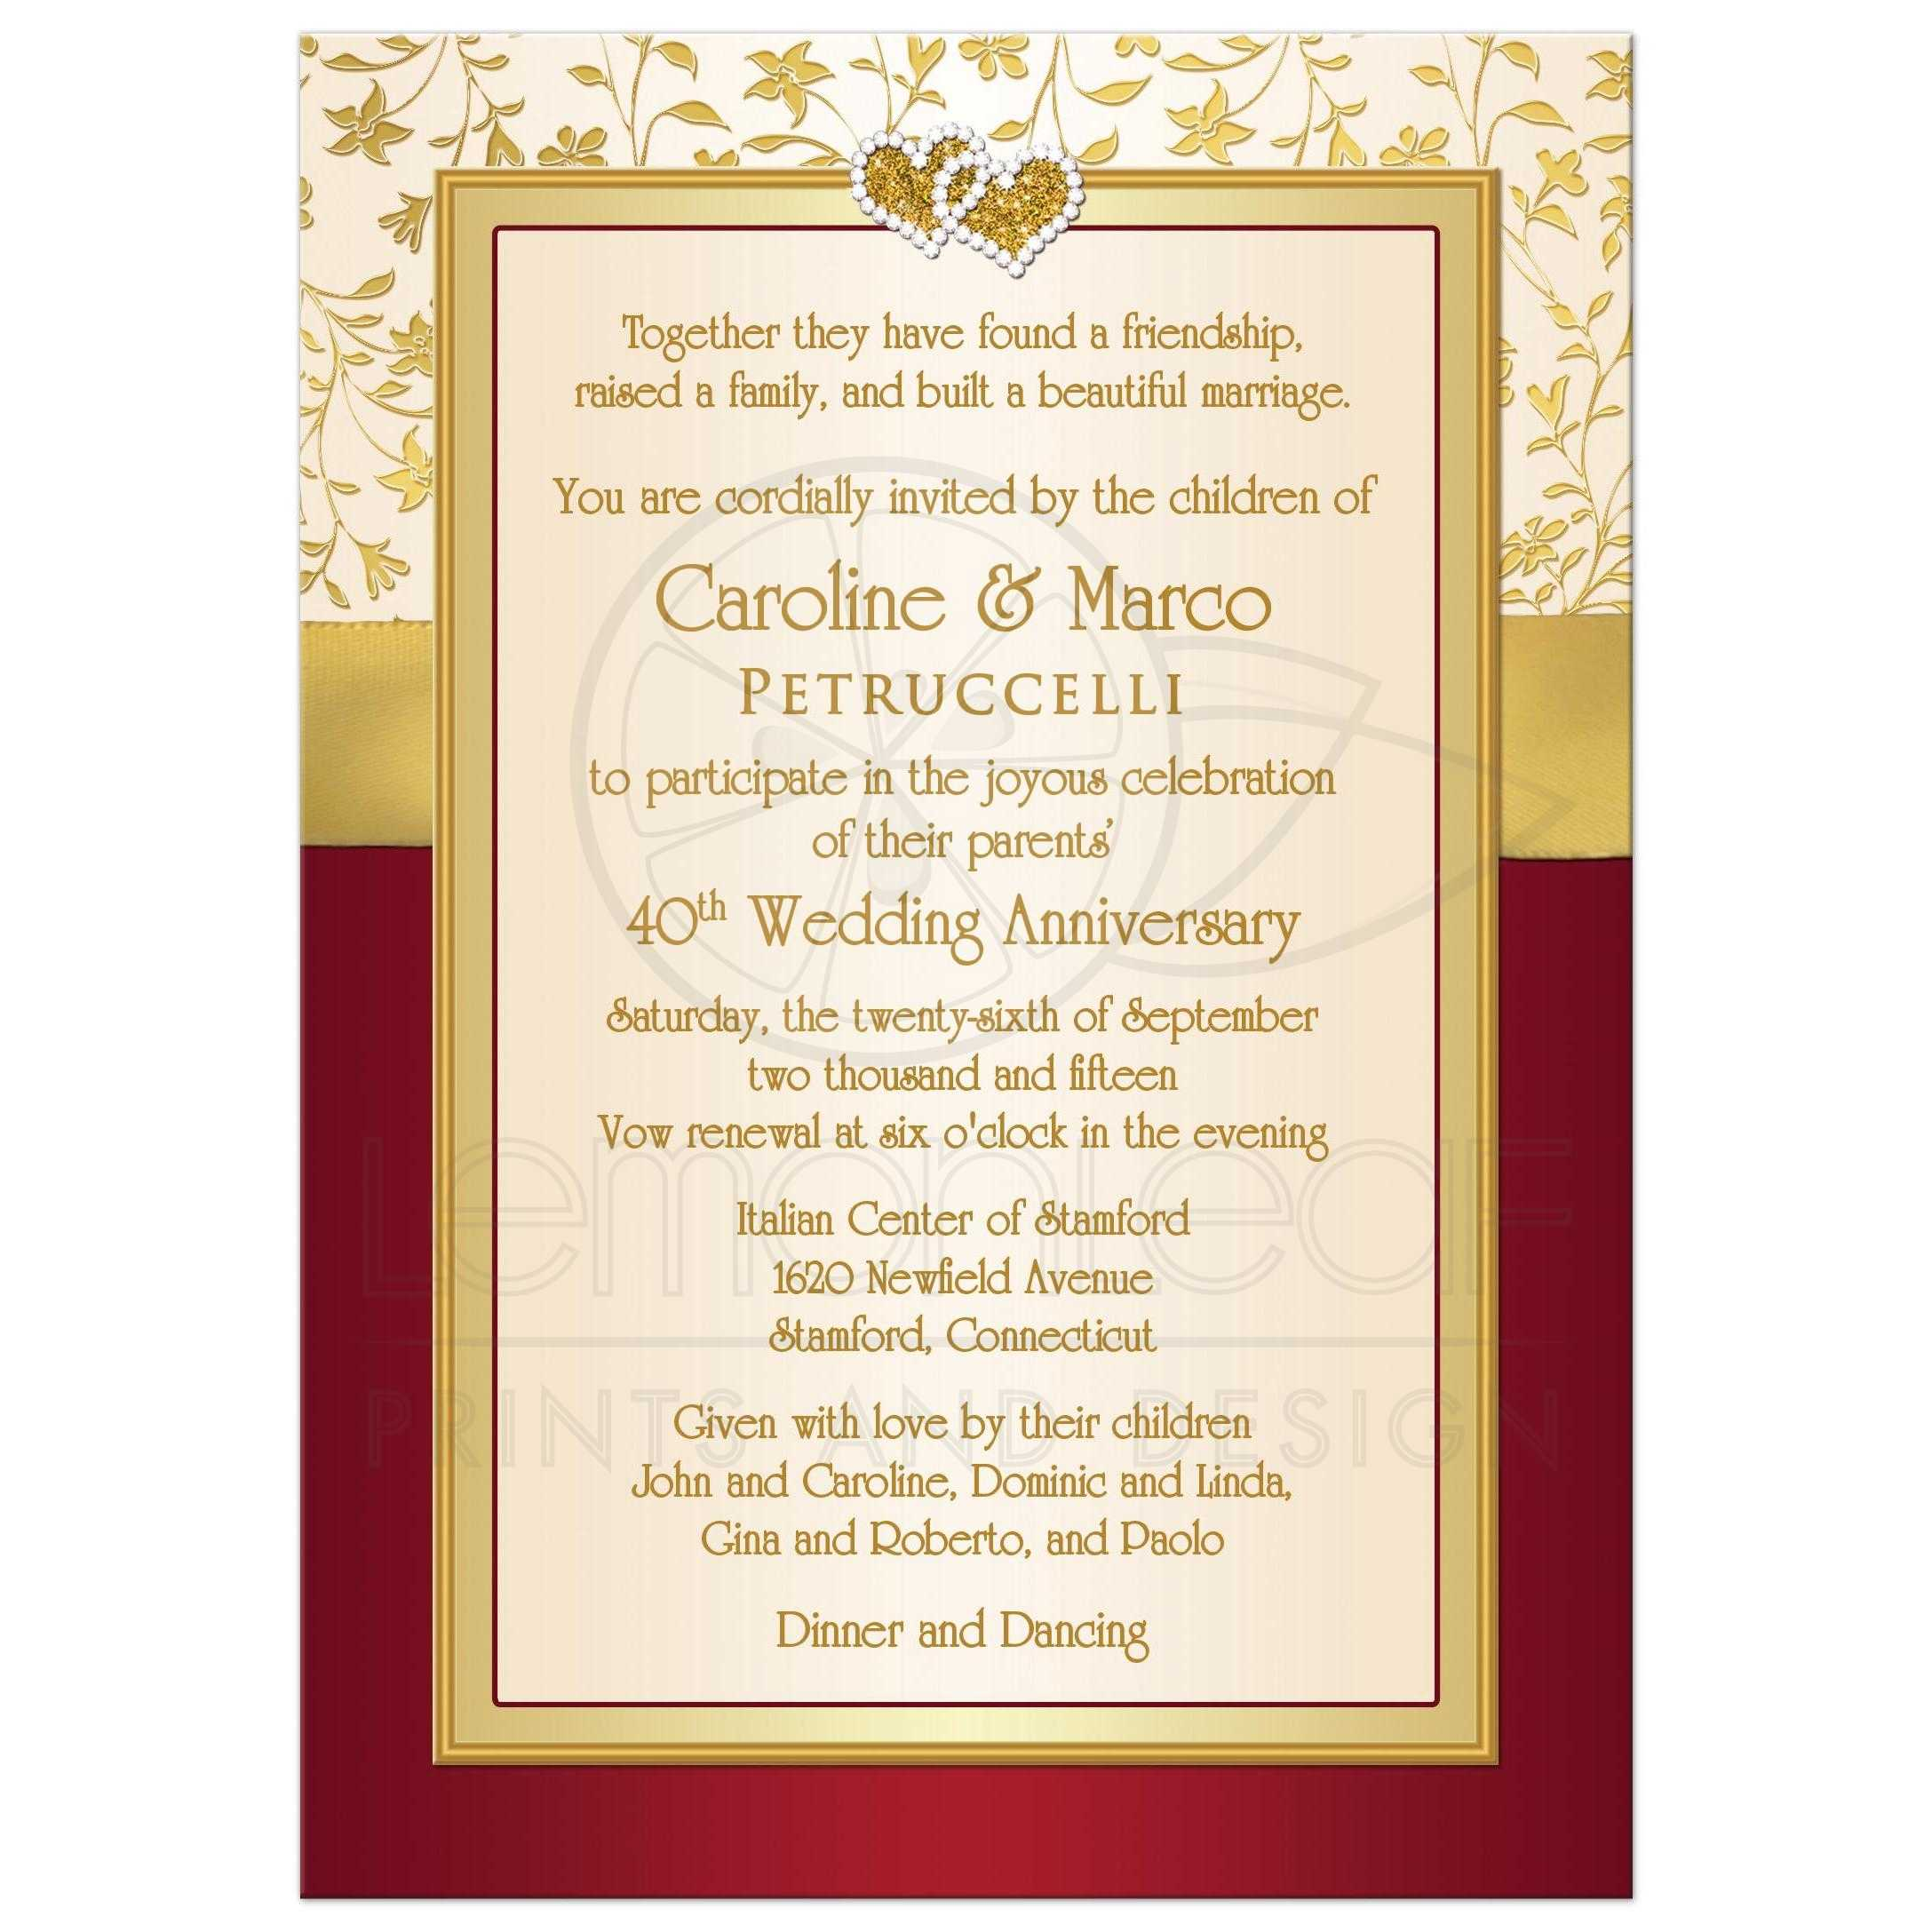 40th wedding anniversary invitation red ivory gold floral printed ribbon joined hearts - Wedding anniversary invitations ...